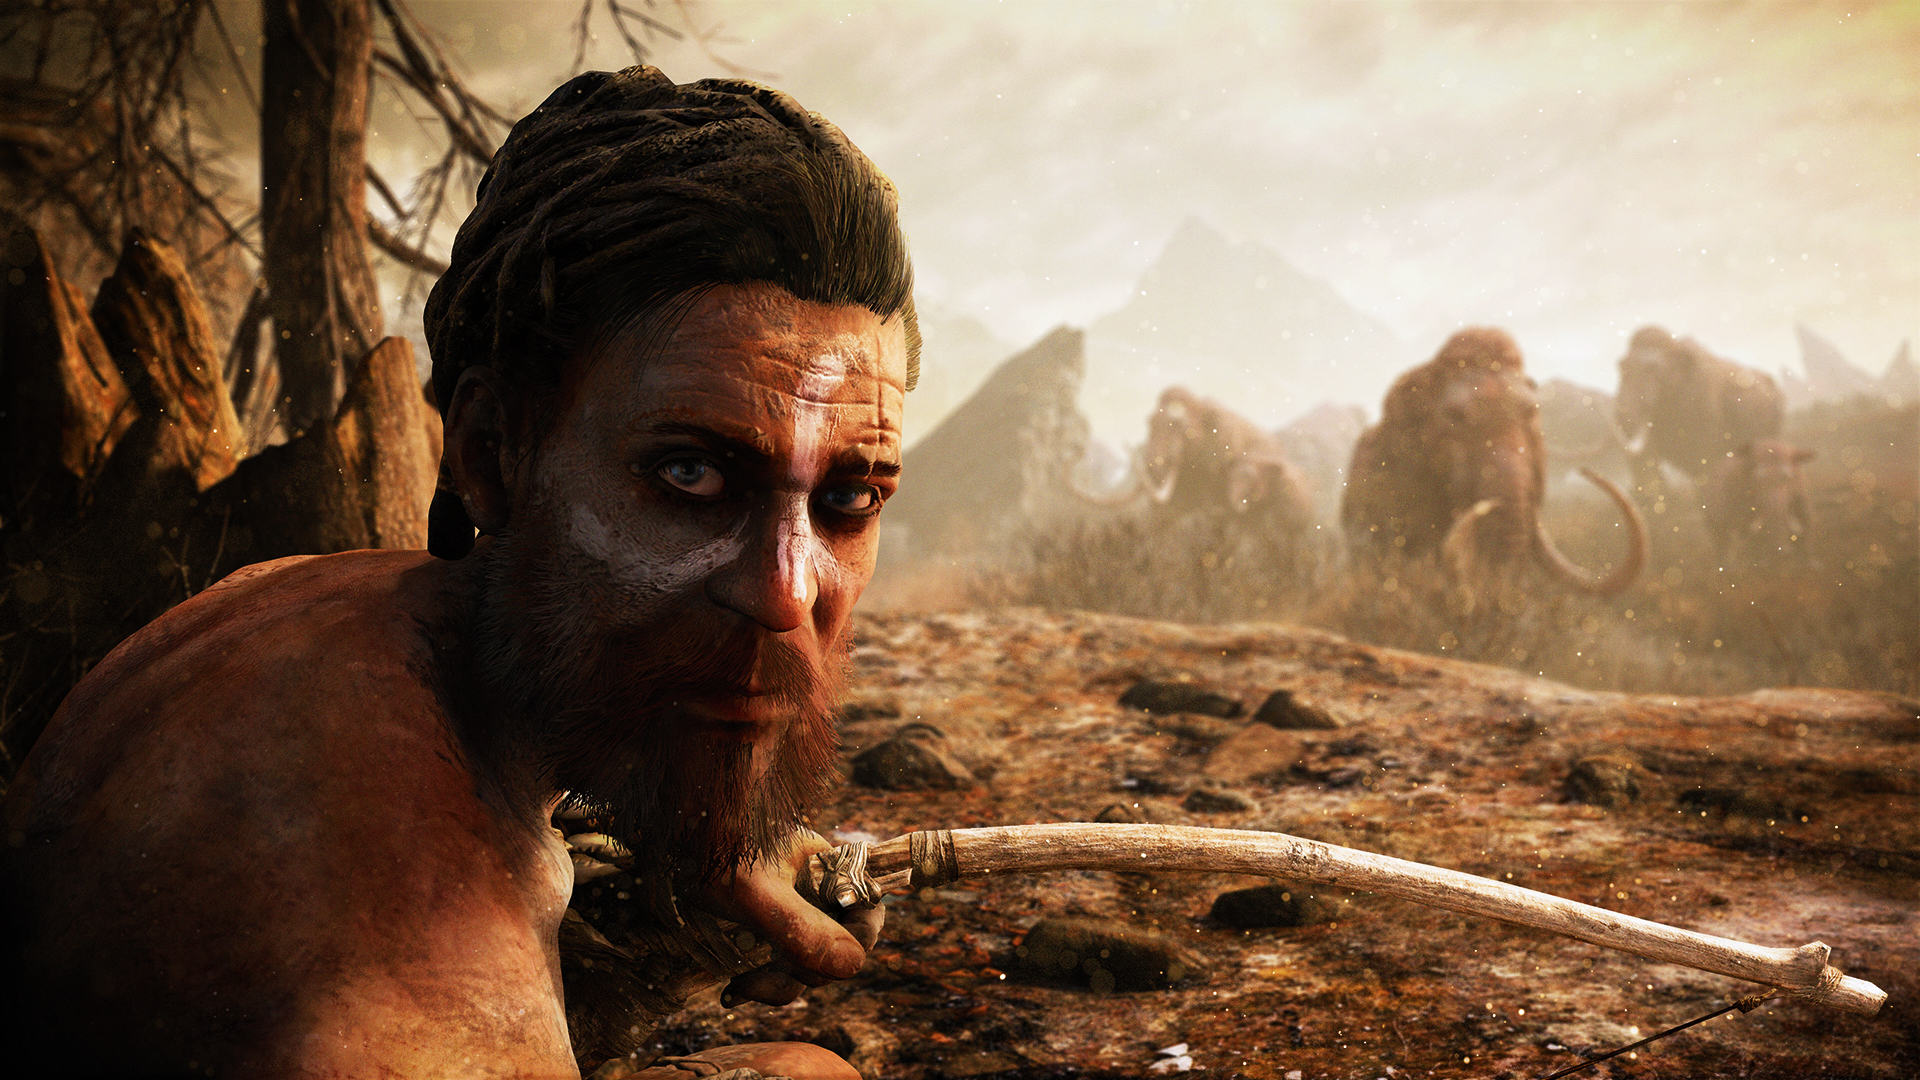 UNILAD FCP ANNOUNCE SCREEN 001 EMBARGO OCT 6 9AM PST 14440783337 Ubisoft Announce Far Cry Primal With Reveal Trailer And Release Dates